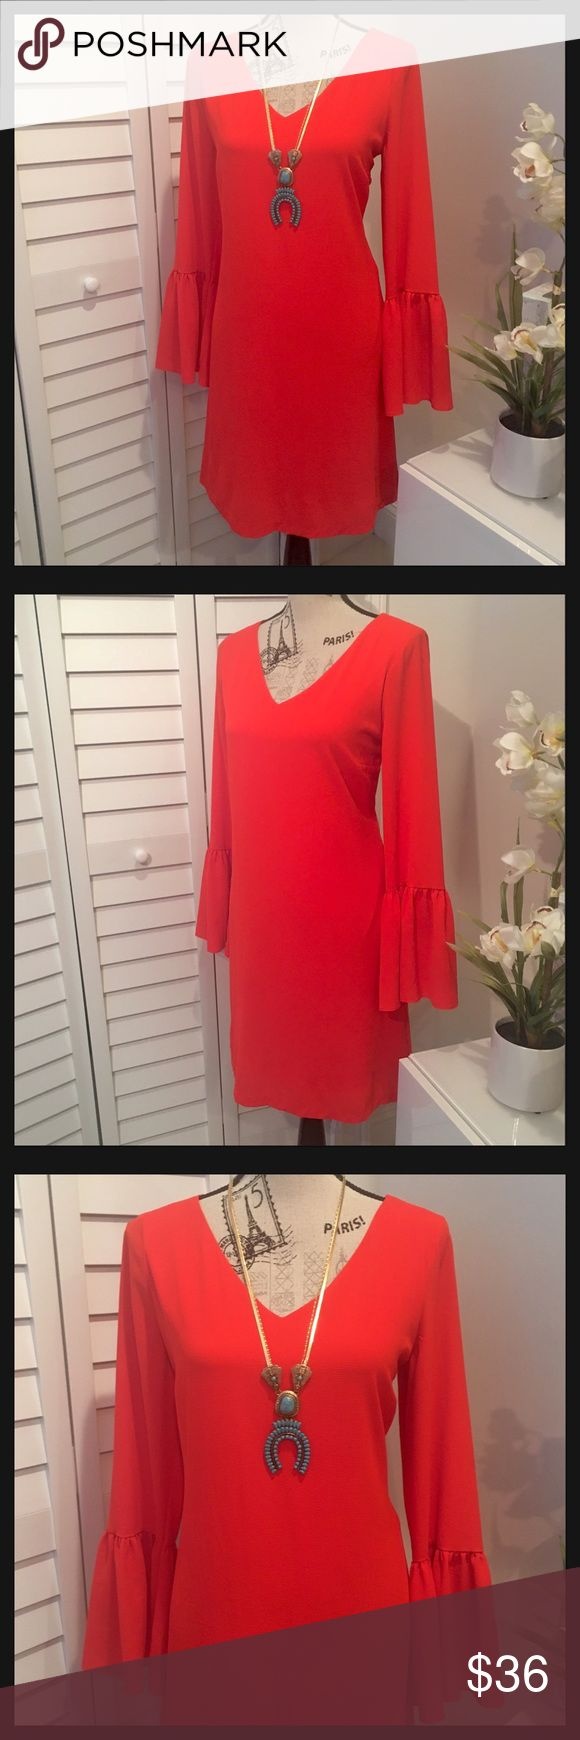 NWT Super Cute Long Ruffle Sleeves Fiery Red Dress NWT Super Cute Long Sleeves Fiery Red Mini Dress in a Loose Fit, Perfect Summer Nights🌞 Worthington Dresses Mini